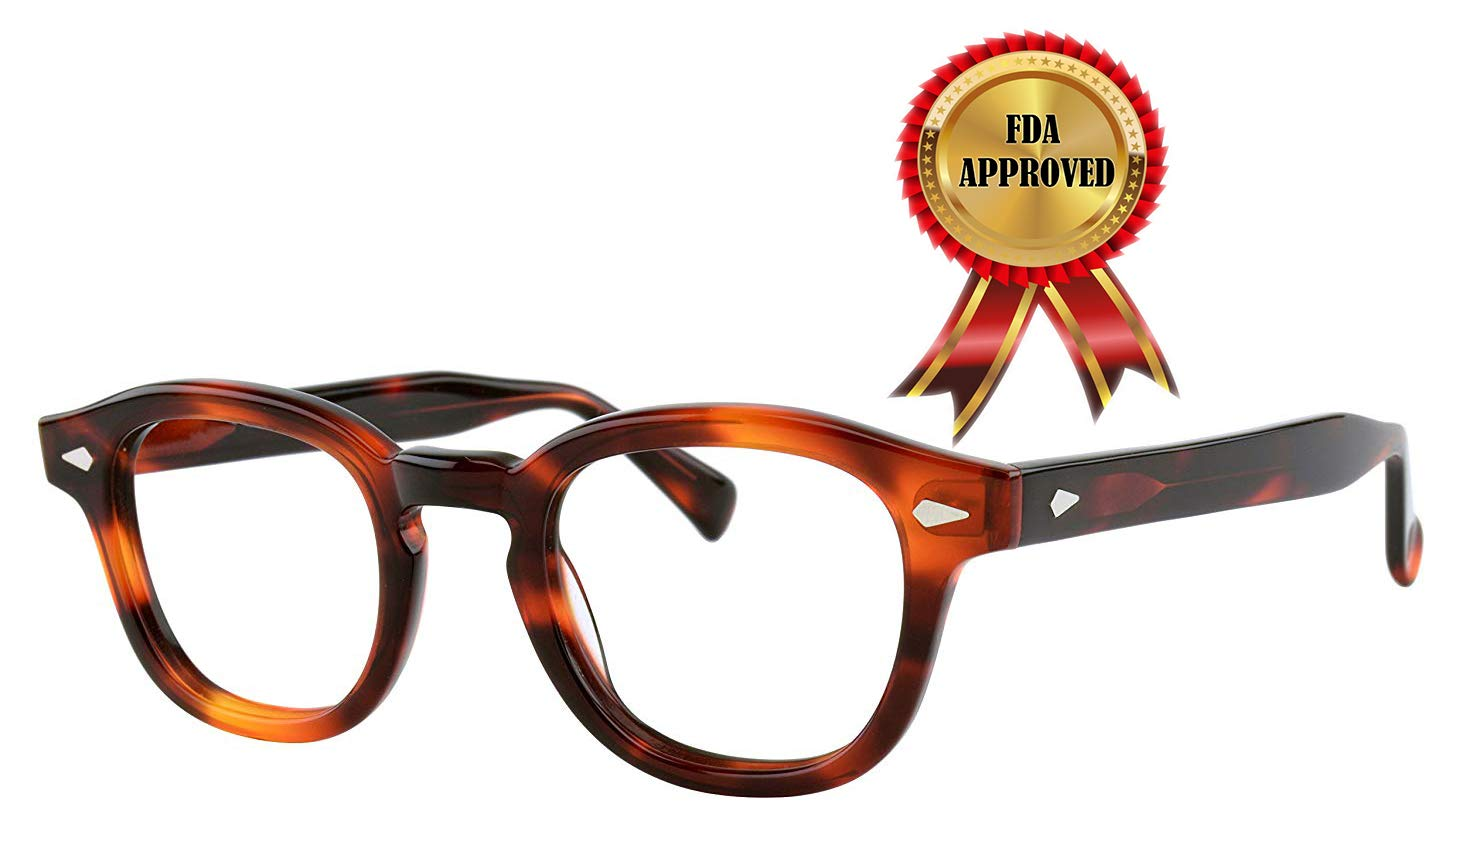 Verona Love Hand Made Acetate Computer Reading Eyeglasses Blue Light Filtering Premium Class Eyewear Filters More Than 90 Percent Blue Light Vintage Style Unisex Protective Ey (Demi Amber Size VLV46)